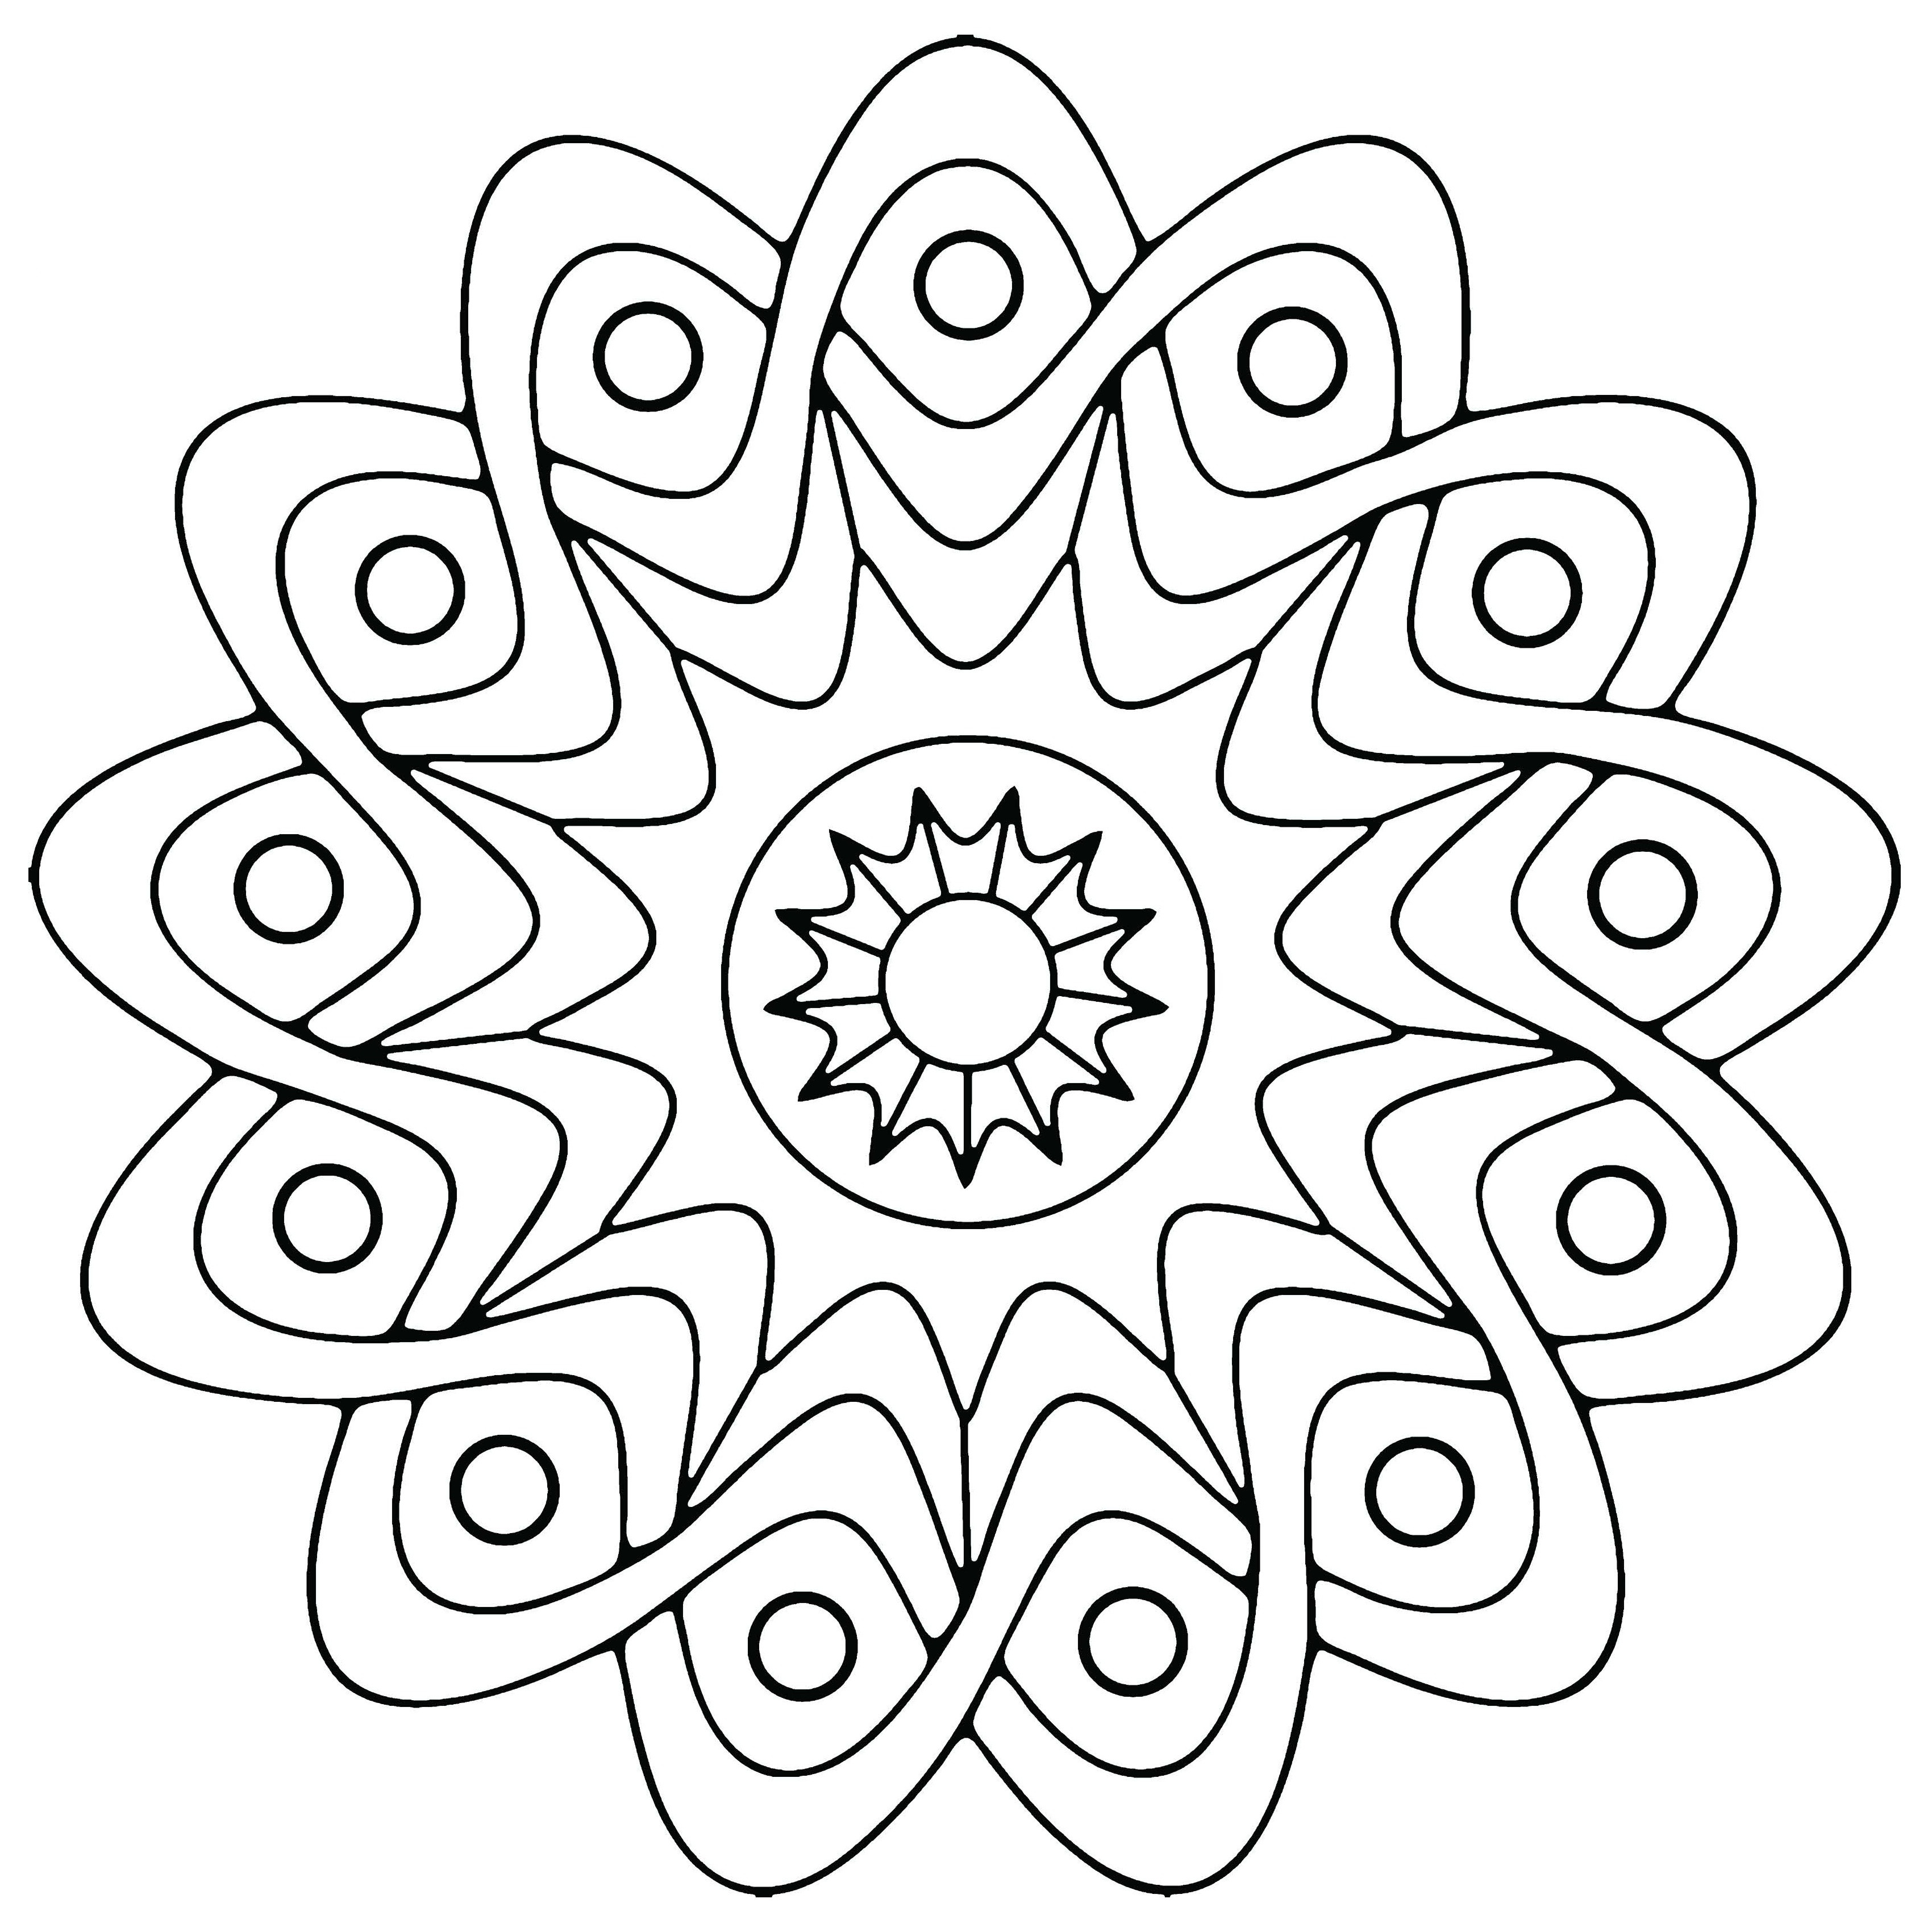 Best ideas about Free Mandala Coloring Pages For Kids . Save or Pin Free Printable Geometric Coloring Pages For Kids Now.